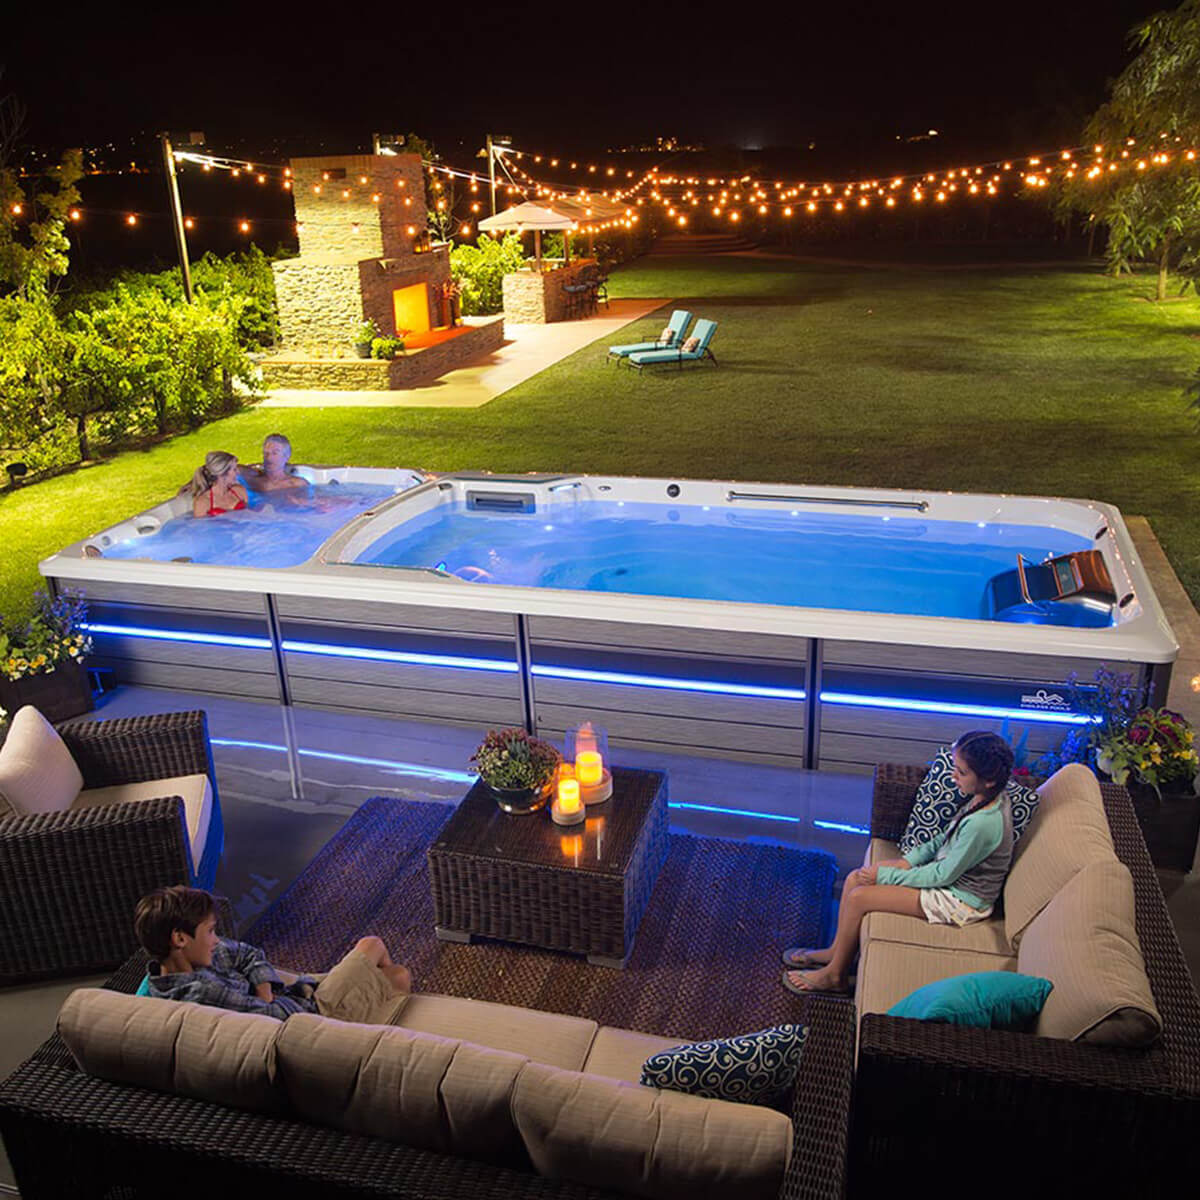 Hot tub or swim spa – which is right for you?